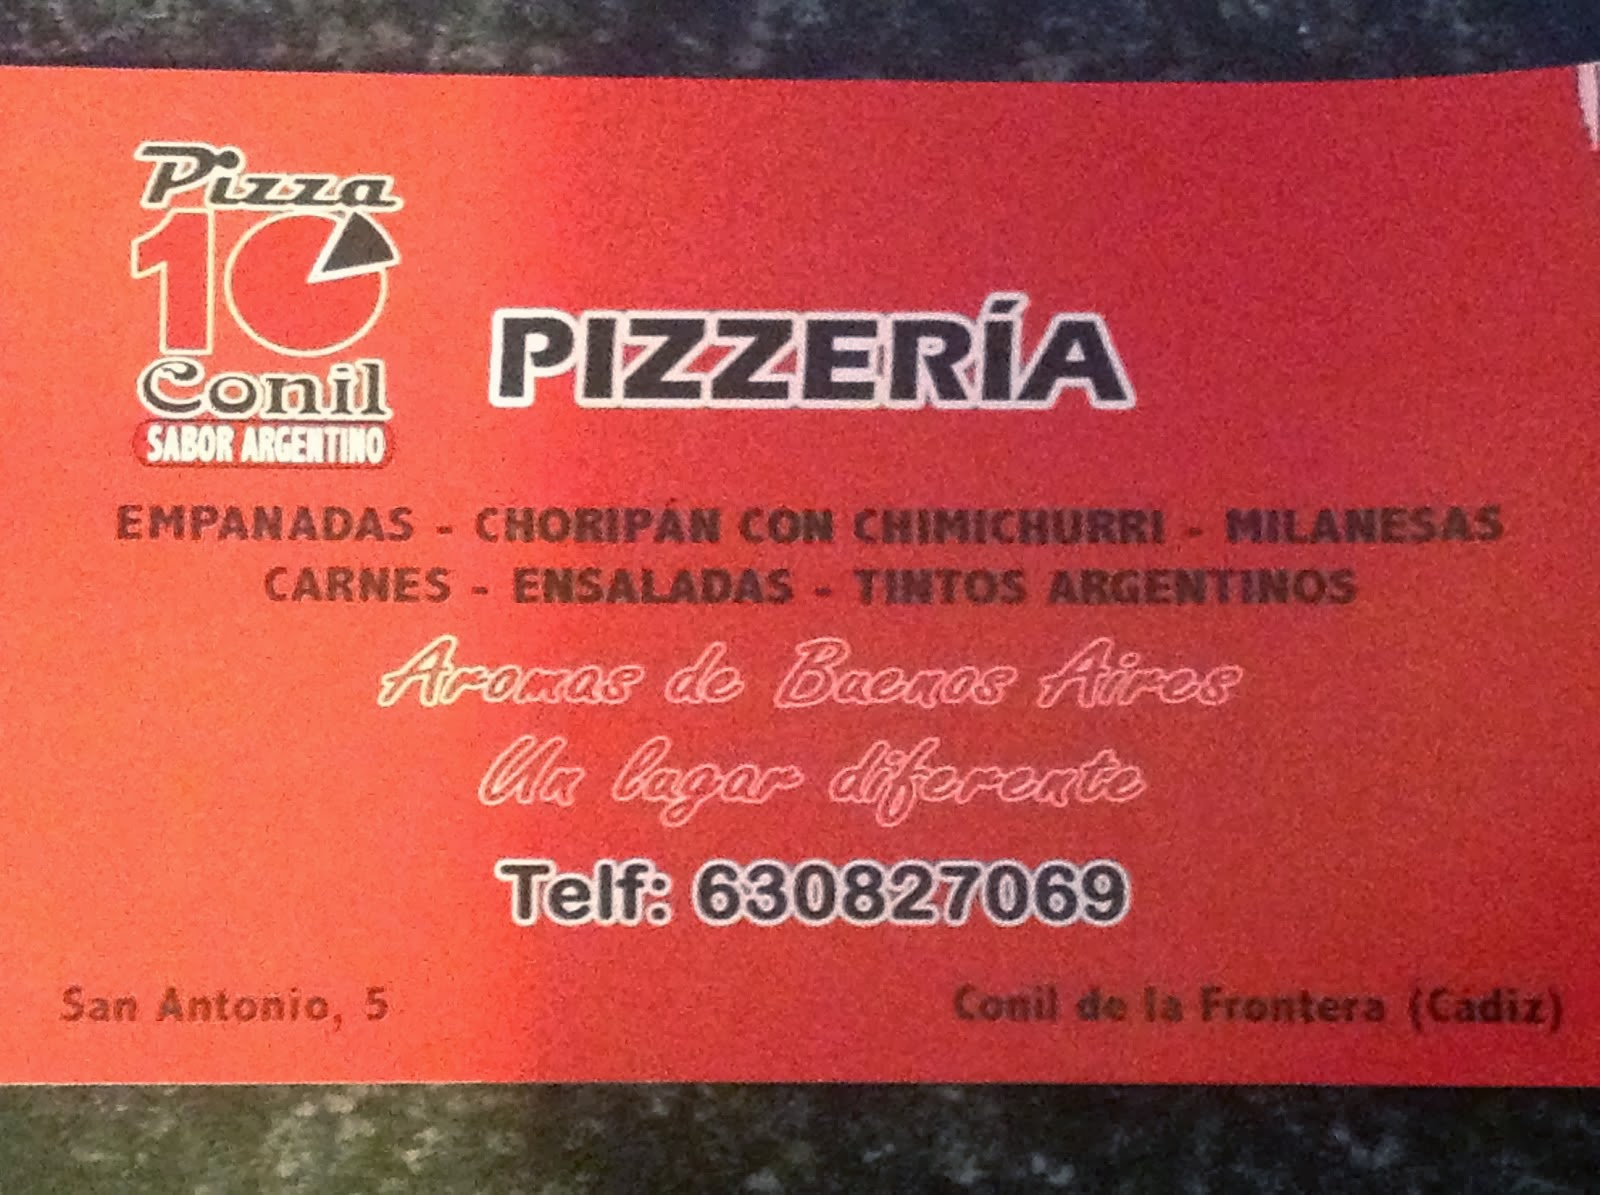 PIZZA 10 El Argentino